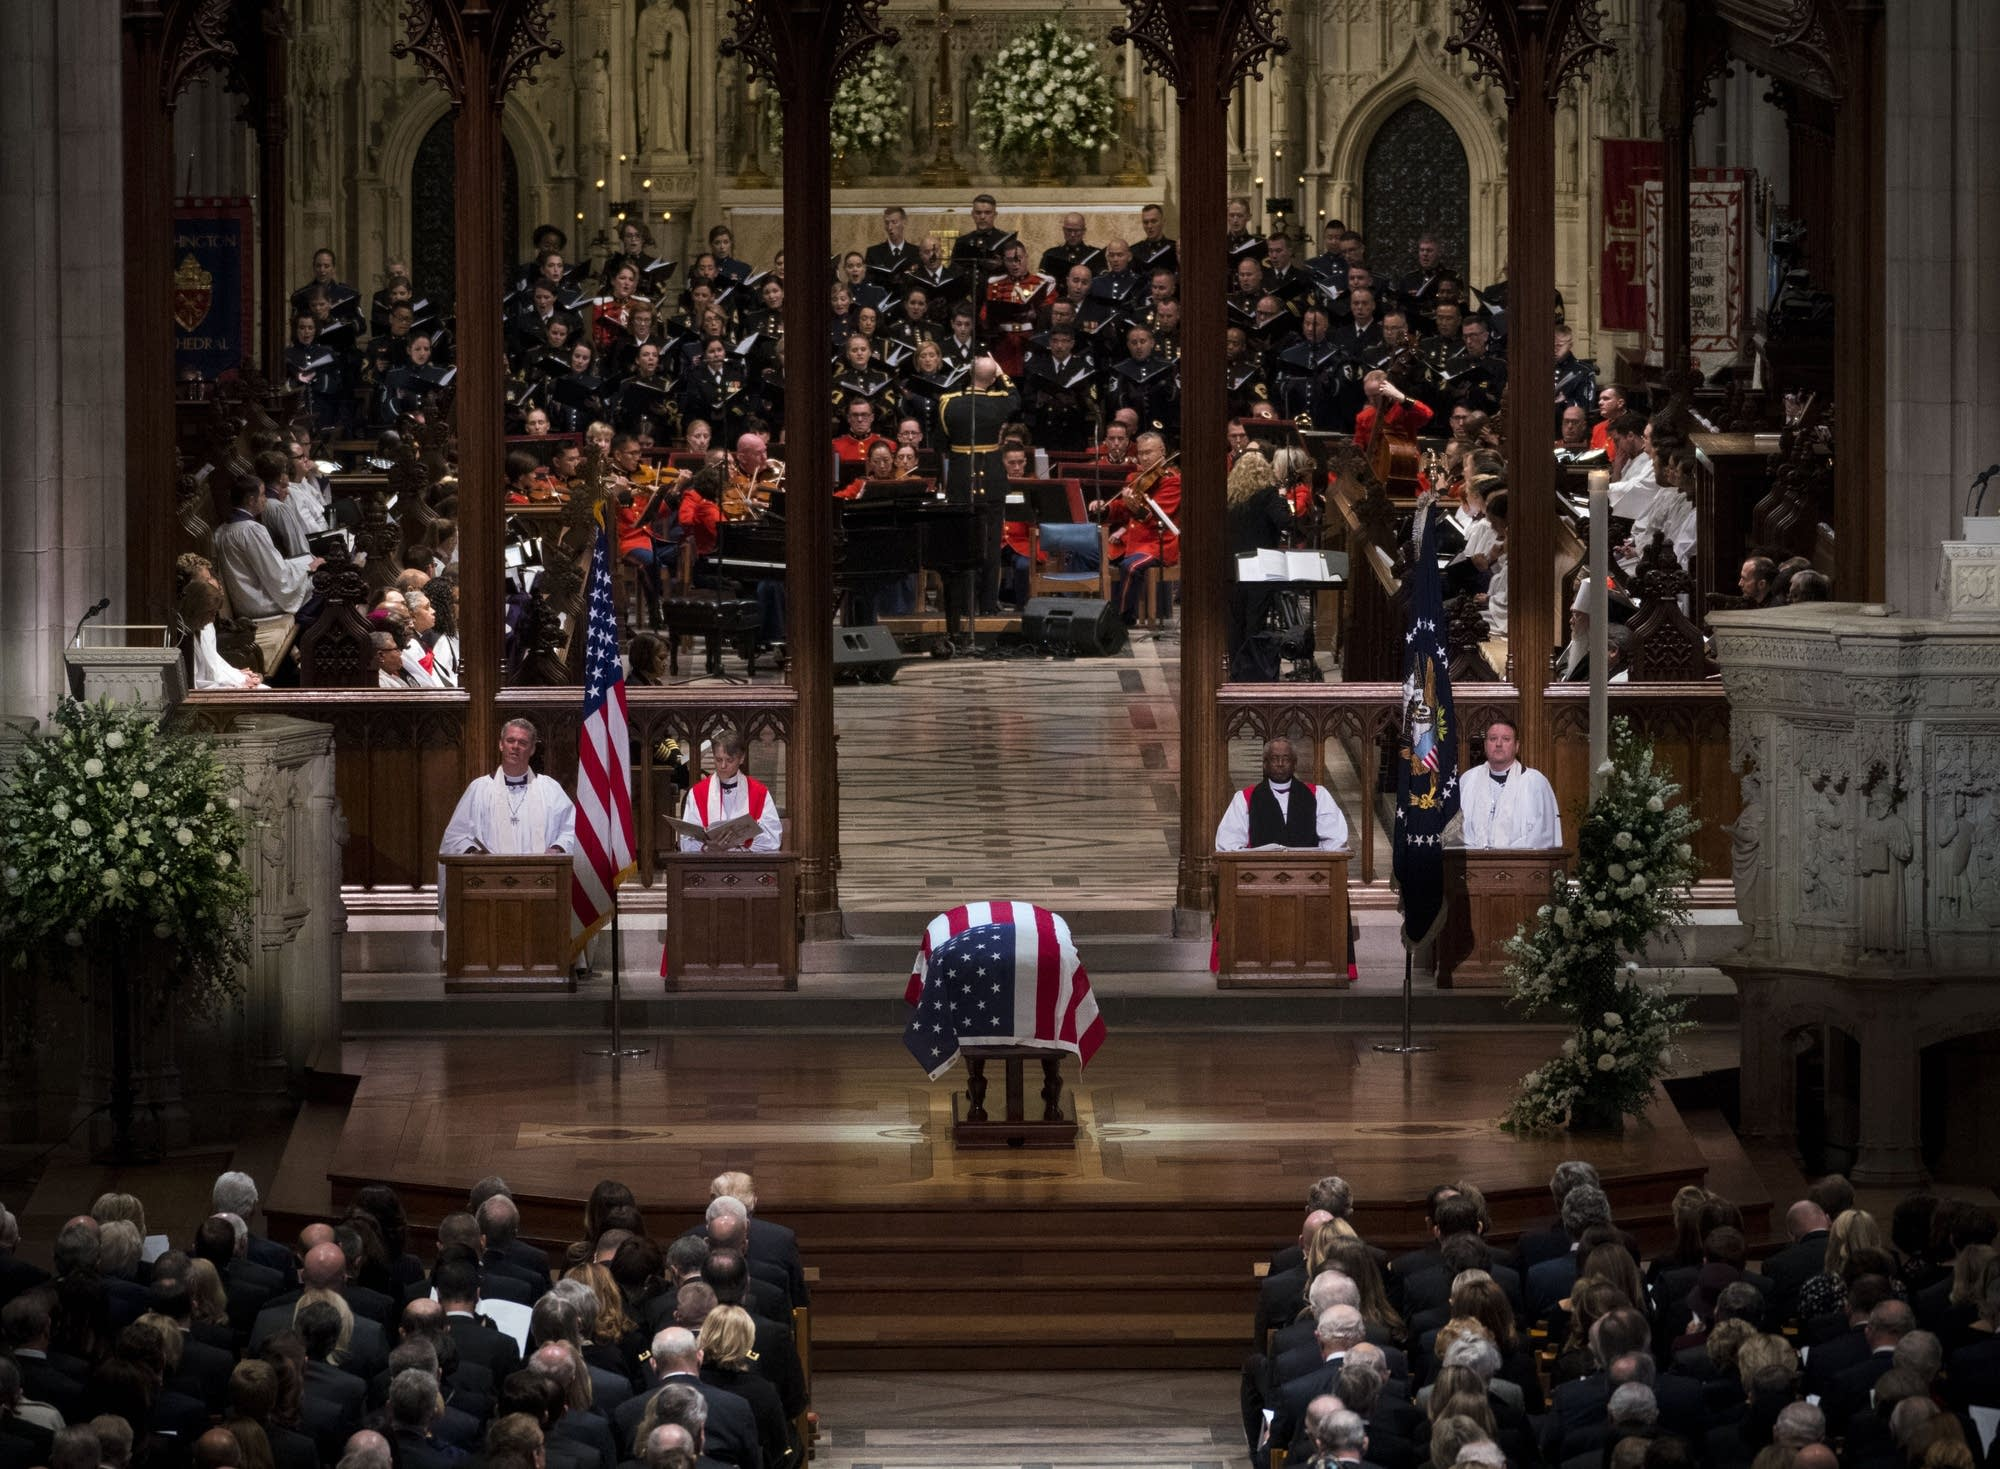 The state funeral for former President George H.W. Bush.